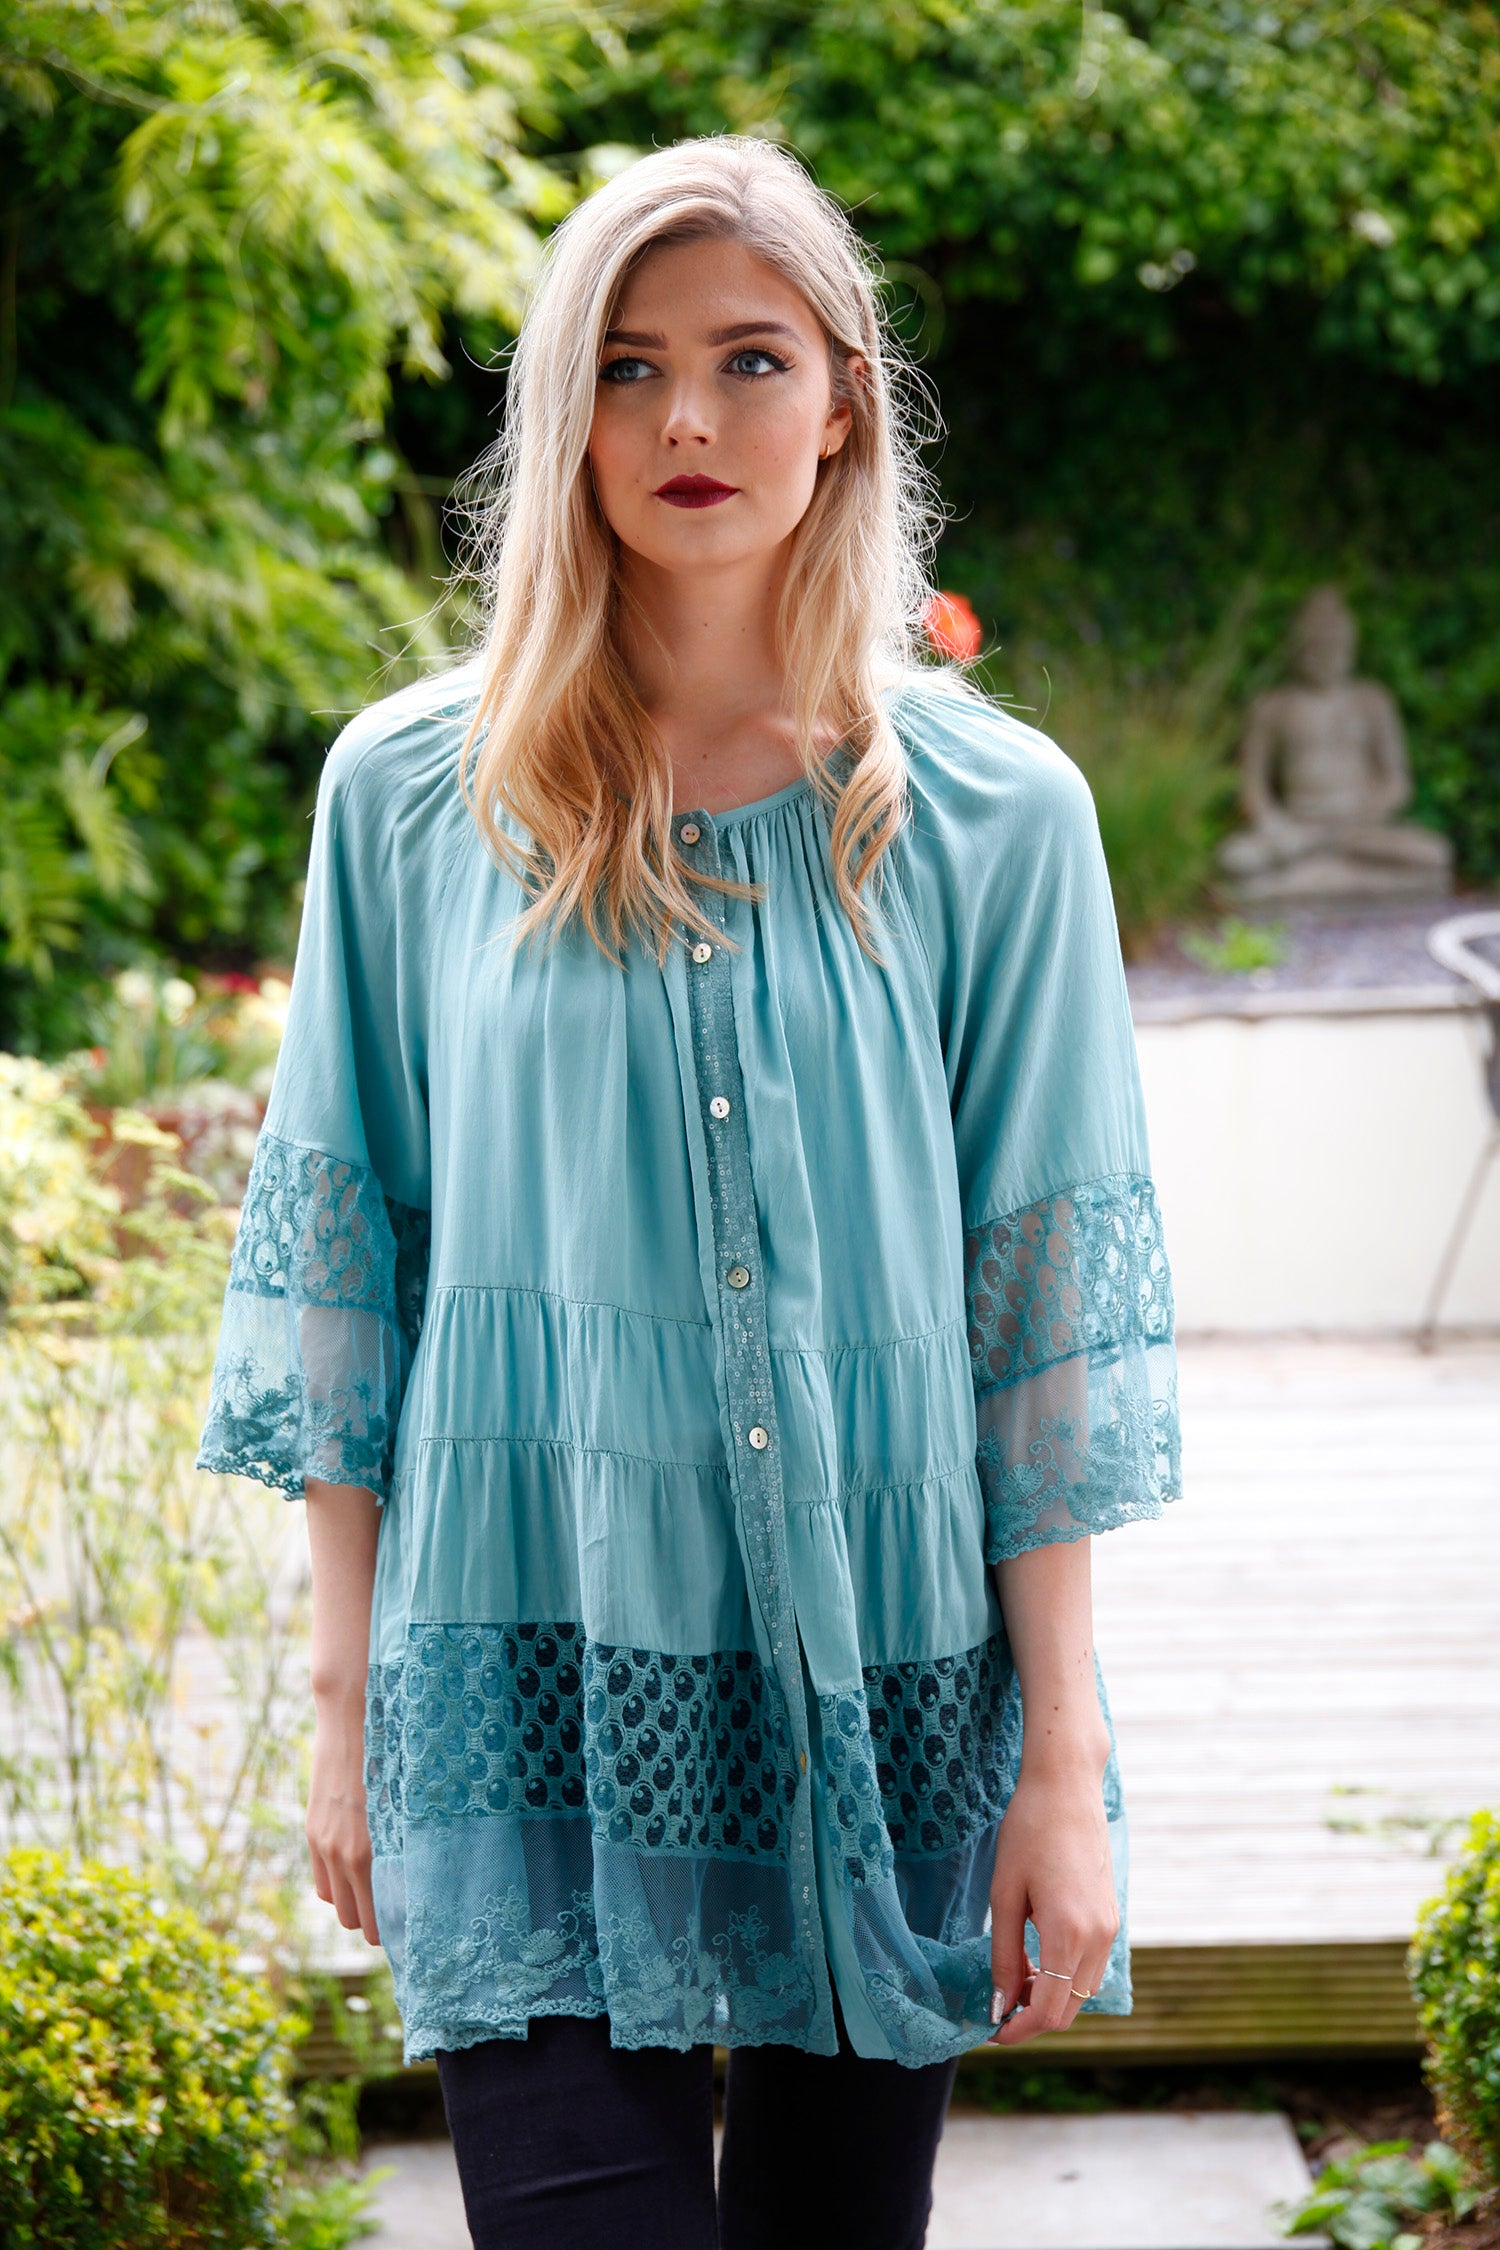 teal lace tiered blouse